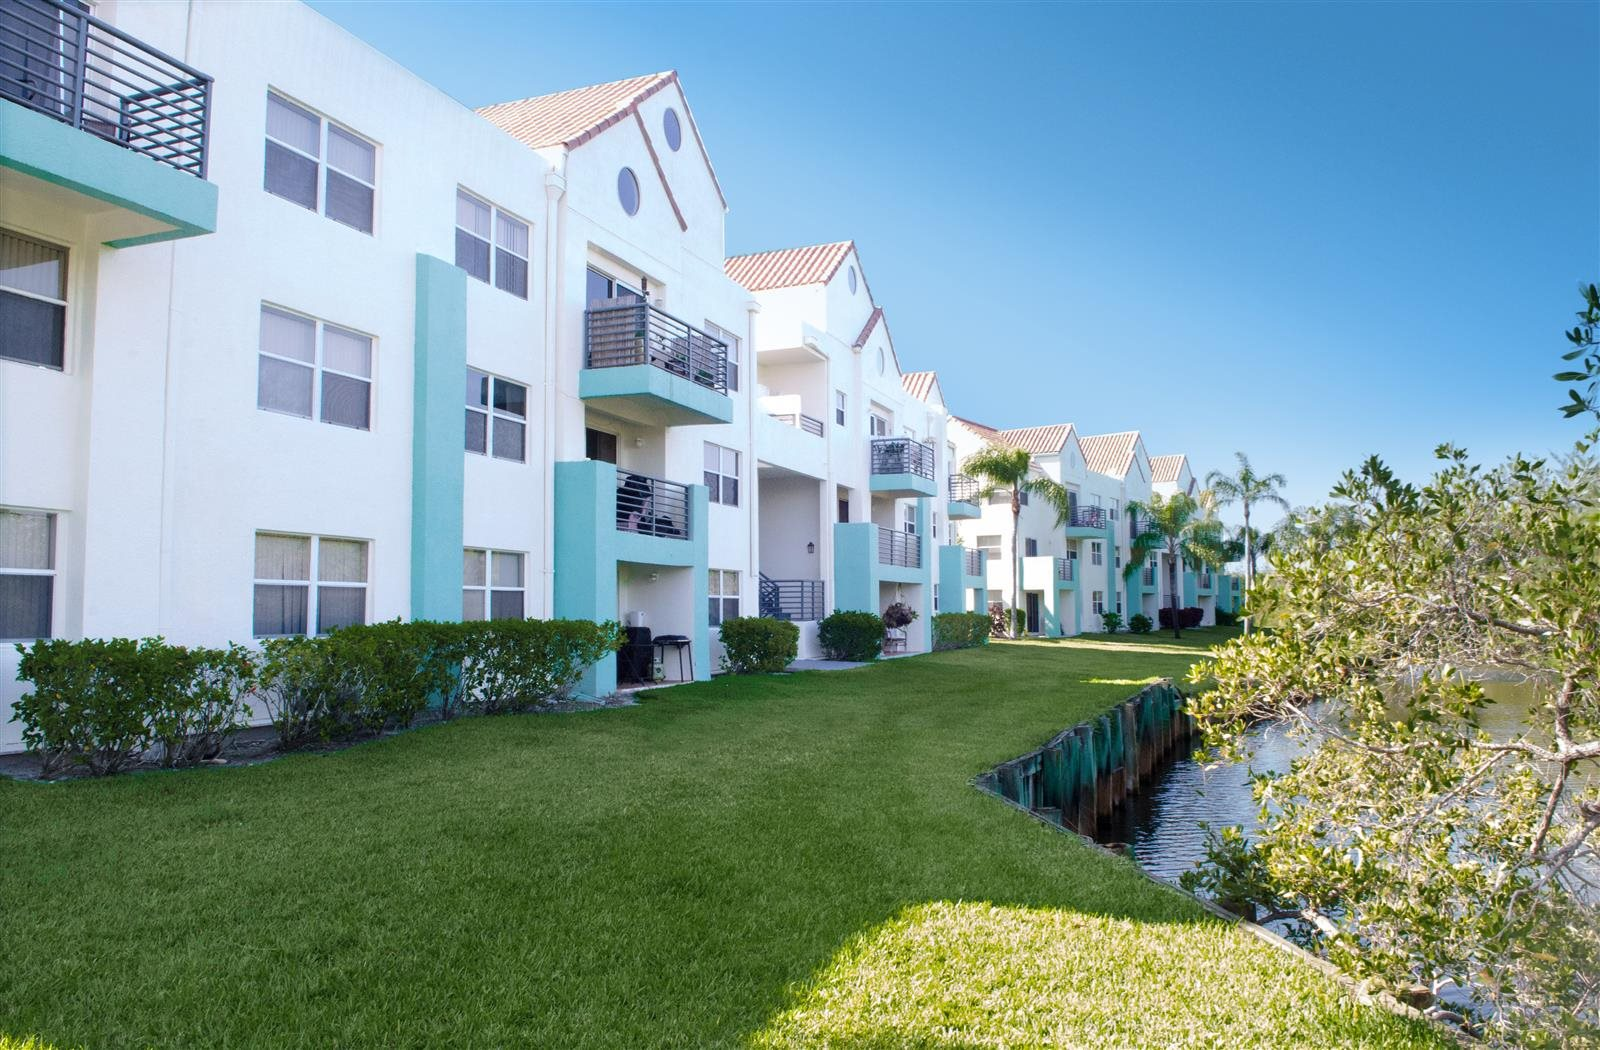 Renovated Apartment Homes Available at Sheridan Ocean Club, Dania Beach, FL, 33004